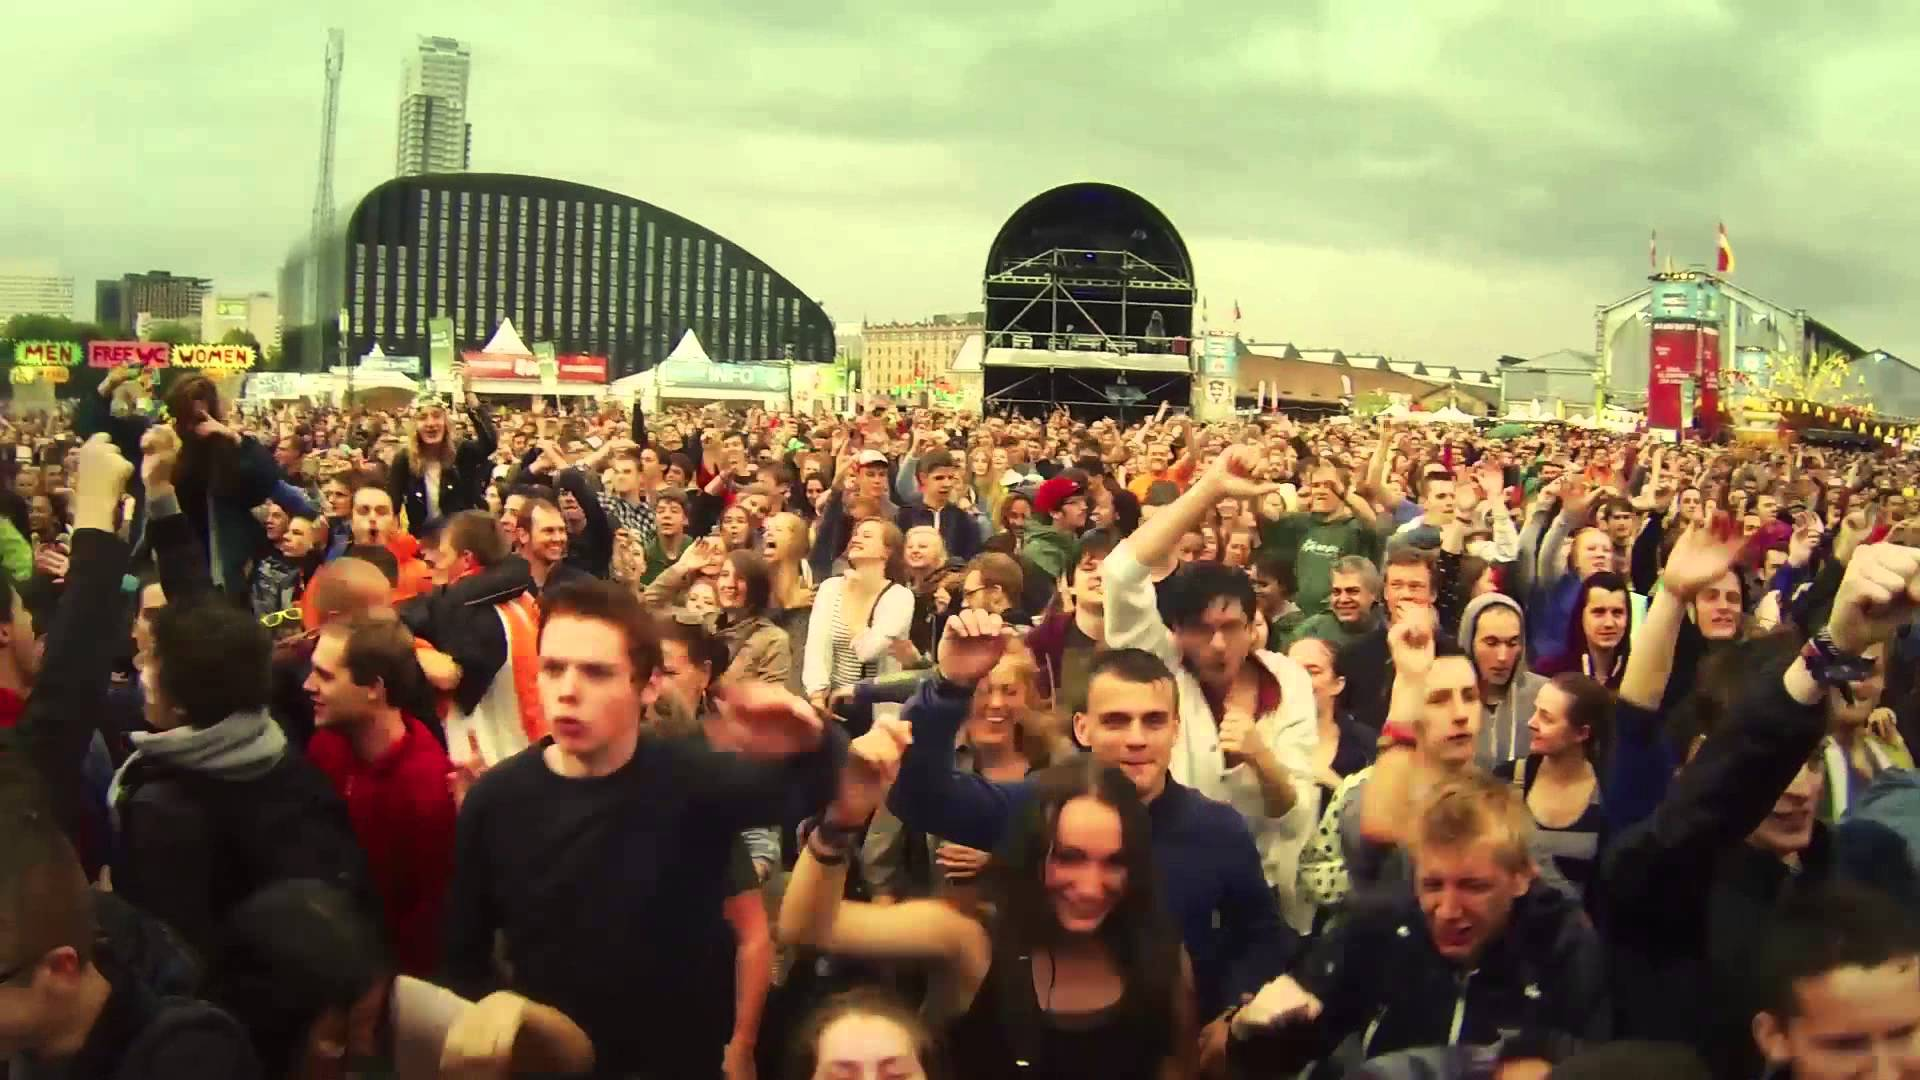 Couleur Café 2014 - Day 1 [6/28/2014]